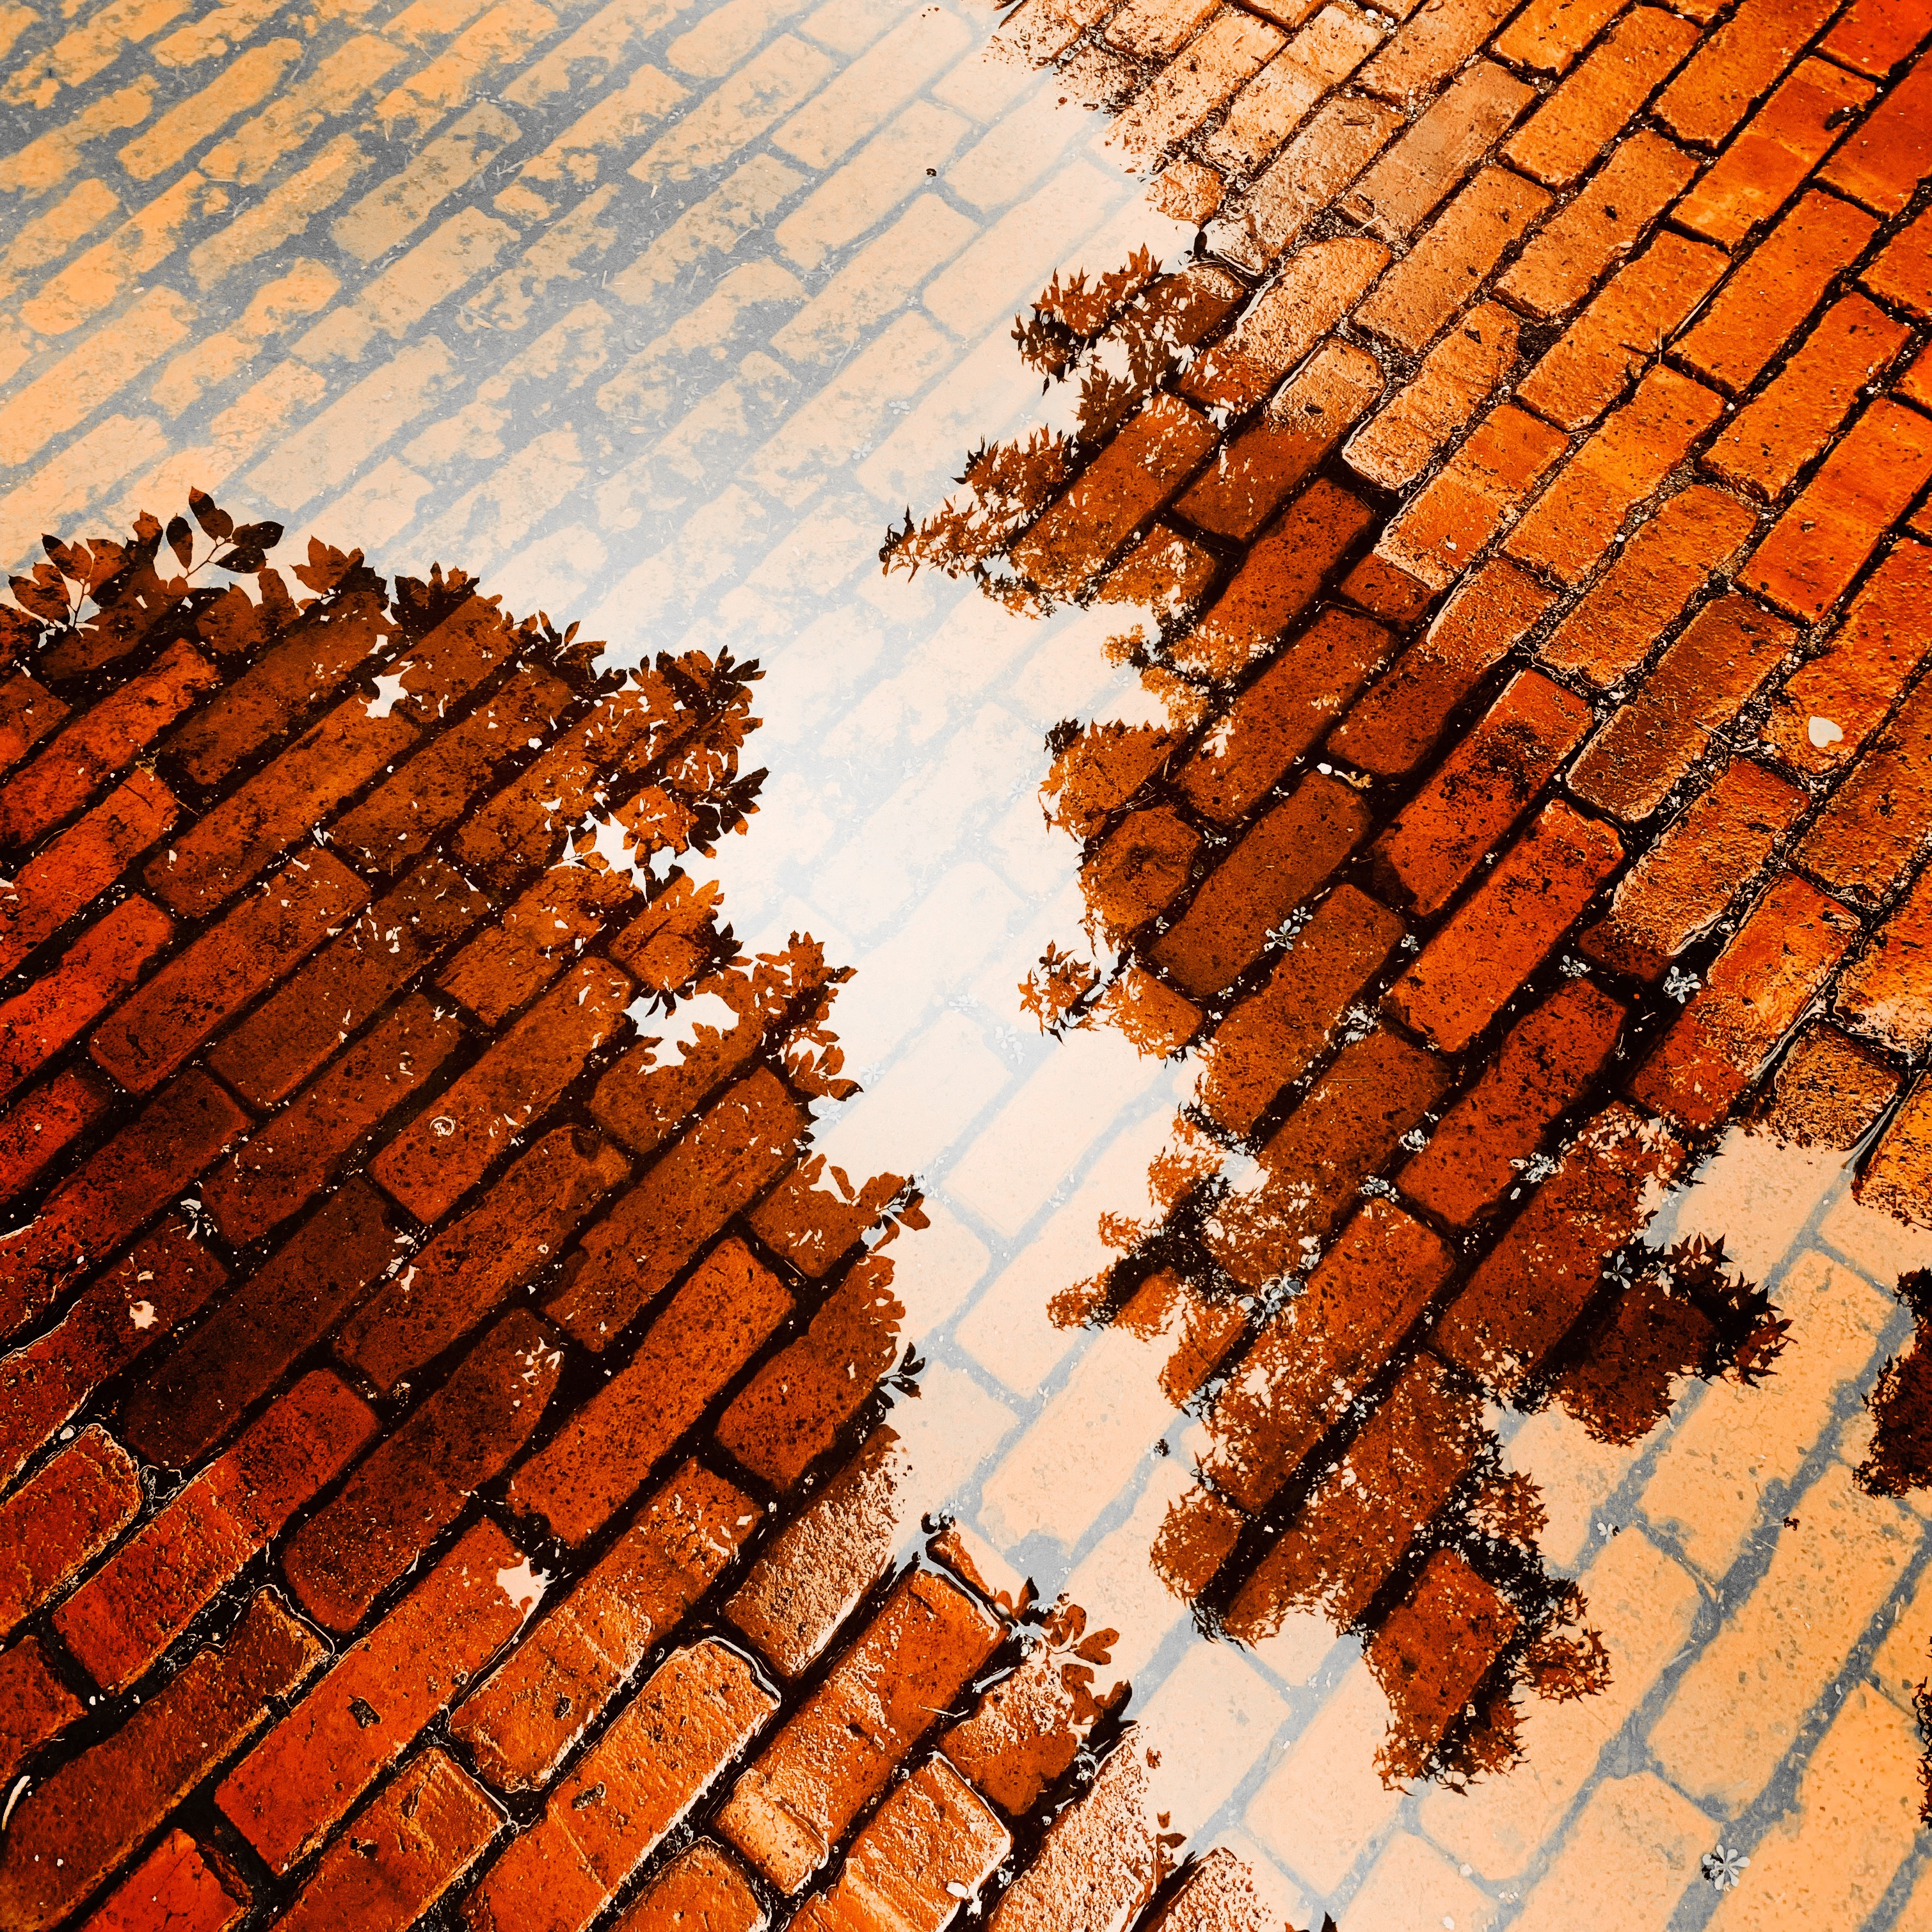 Reflections on bricks and puddles, clouds and trees, ups and downs, lines and weaves